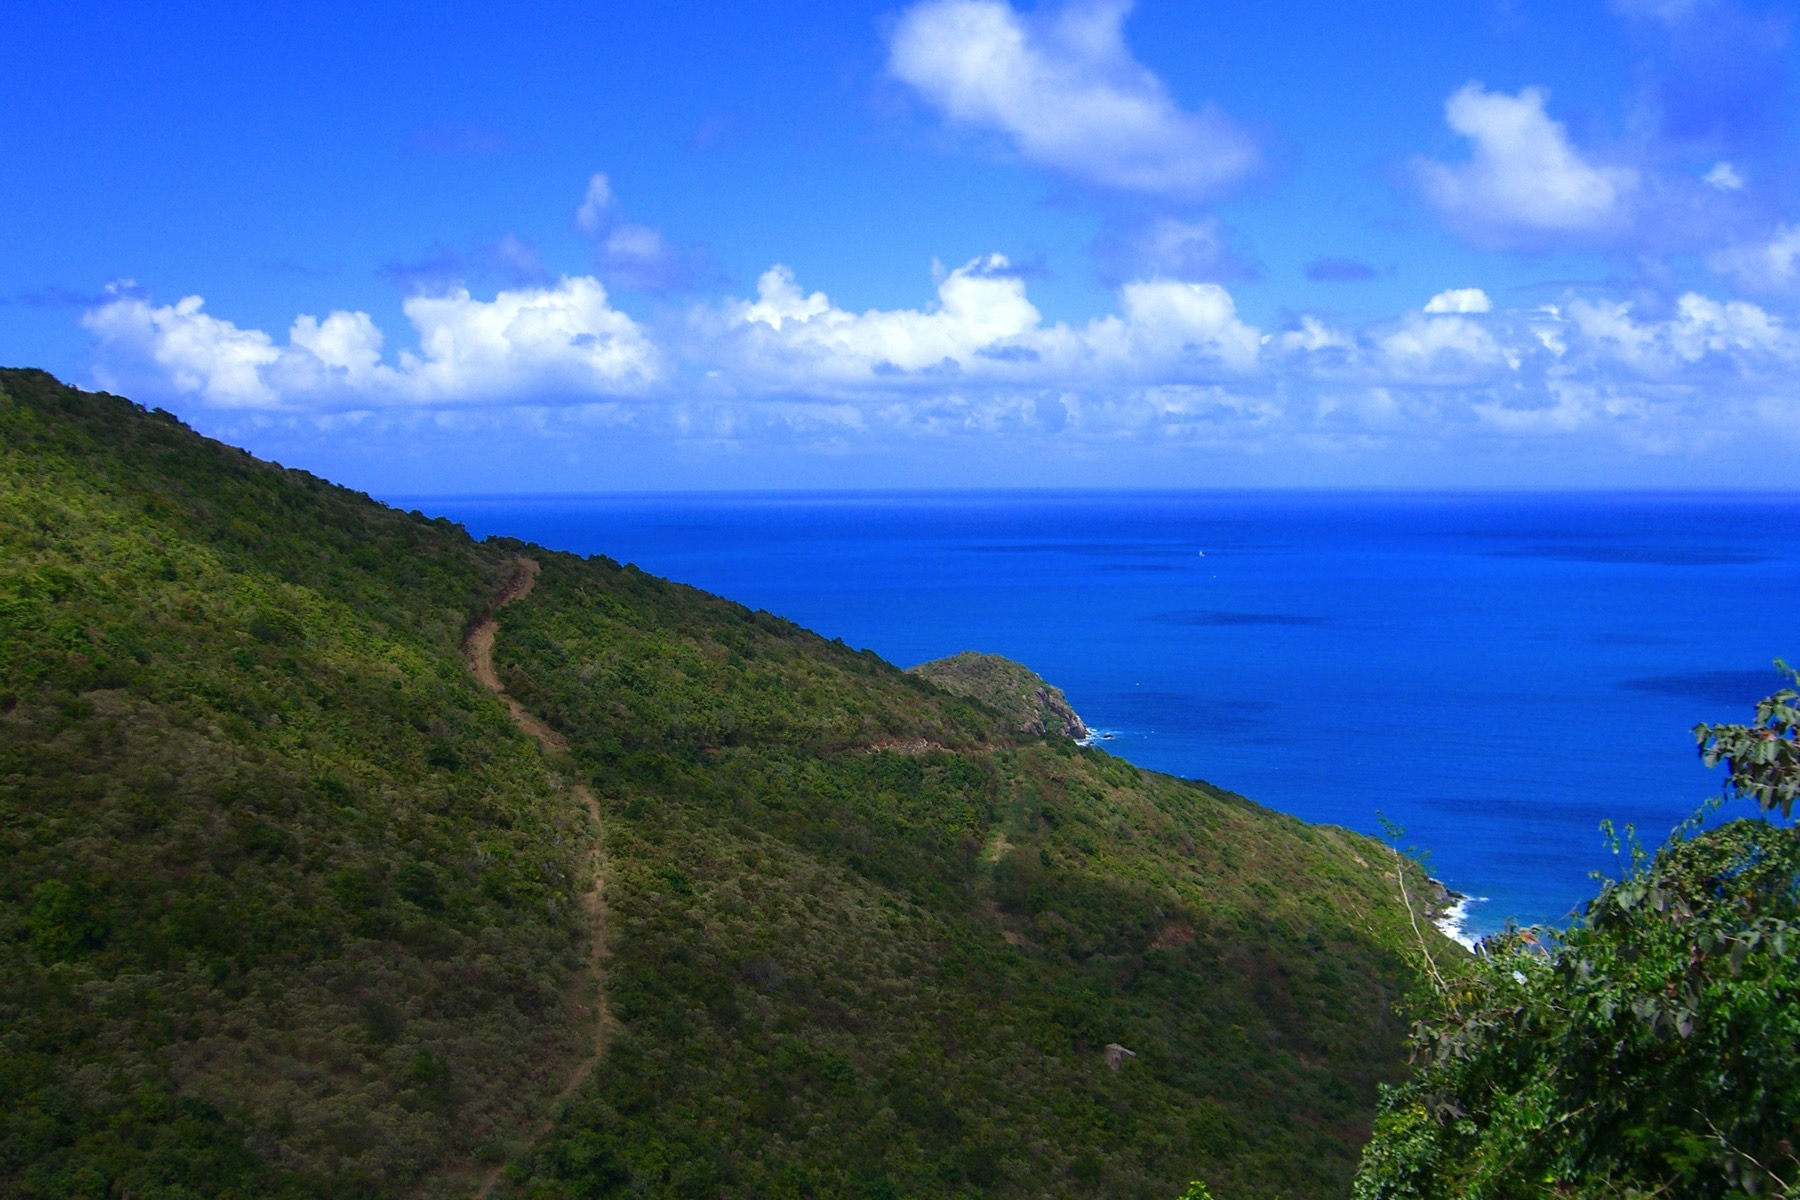 Land for Sale at Cooten Bay Land 96 Cooten Bay, Tortola British Virgin Islands